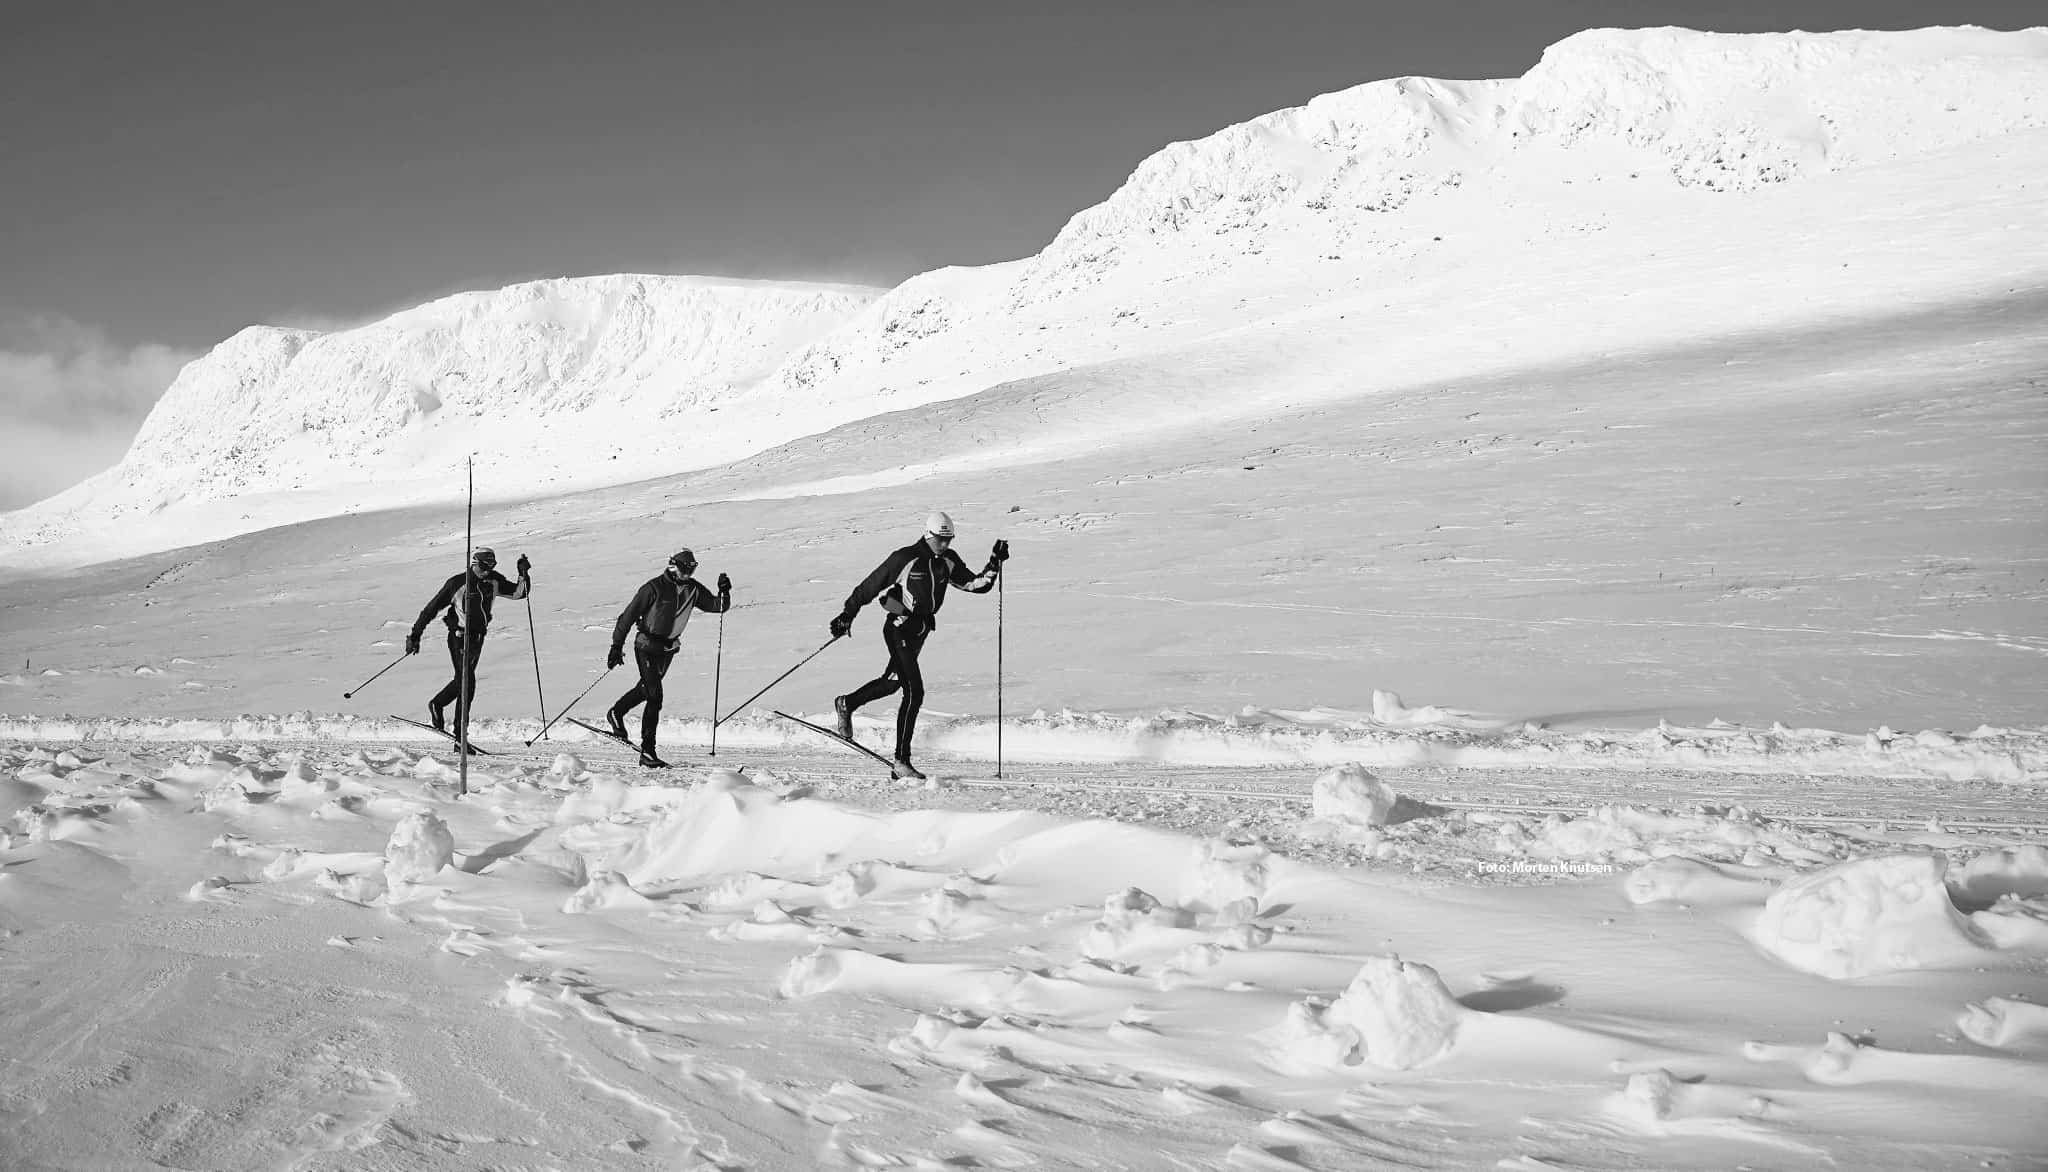 cross-country-geilo-hallingdal-winter-skiing-morten-knudsen-02-11